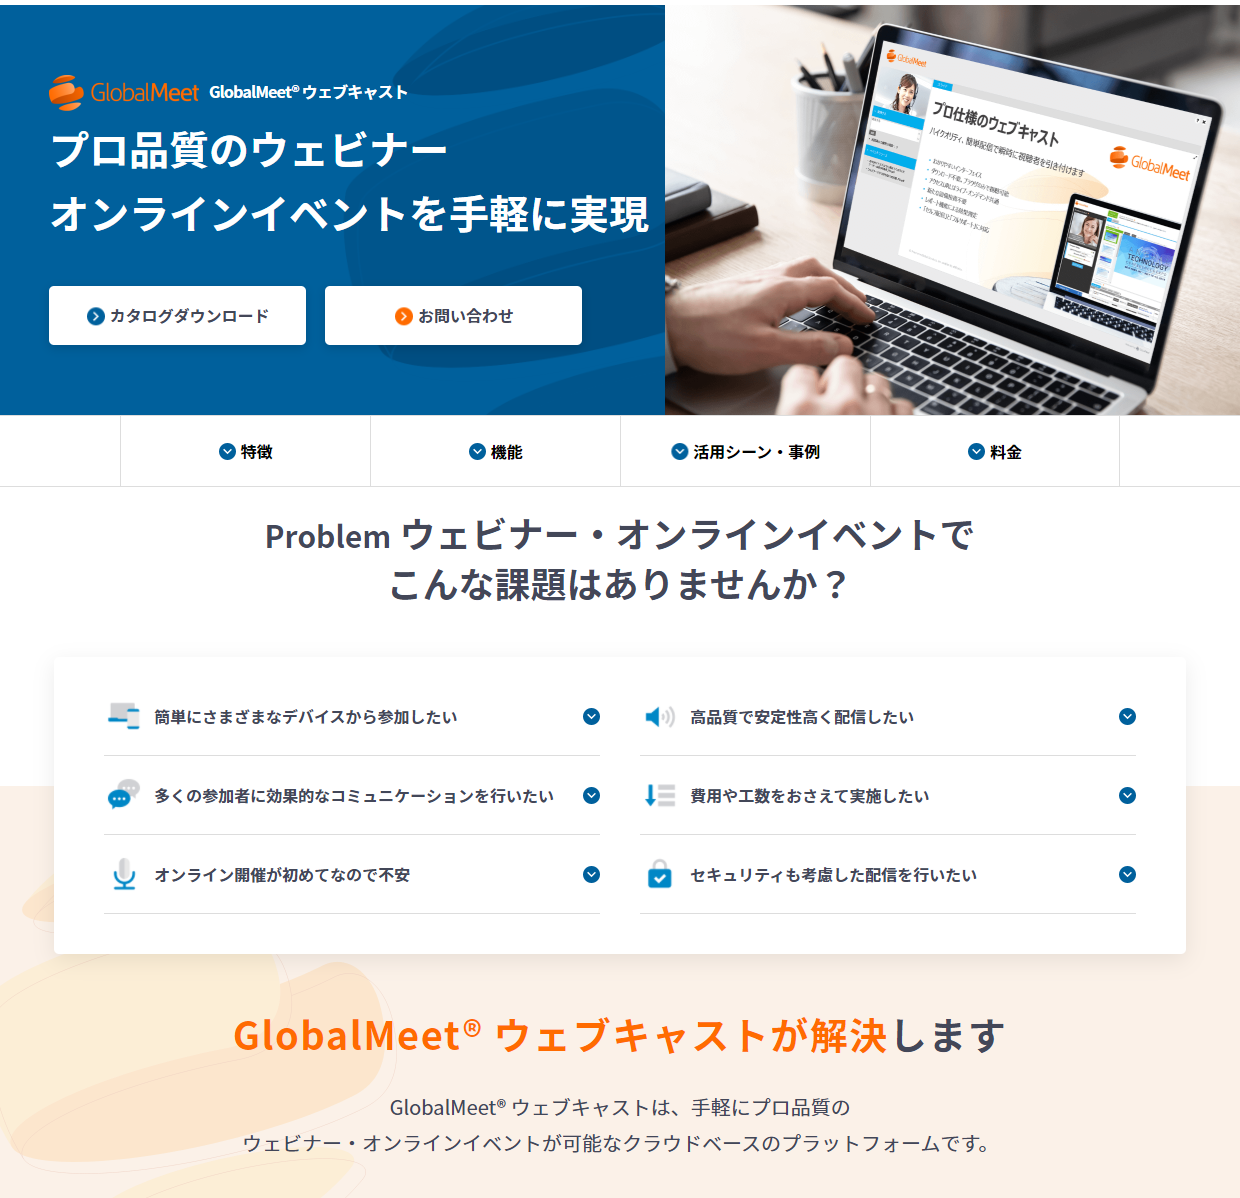 "<span class=""title"">GlobalMeet®ウェブキャストの口コミや評判</span>"